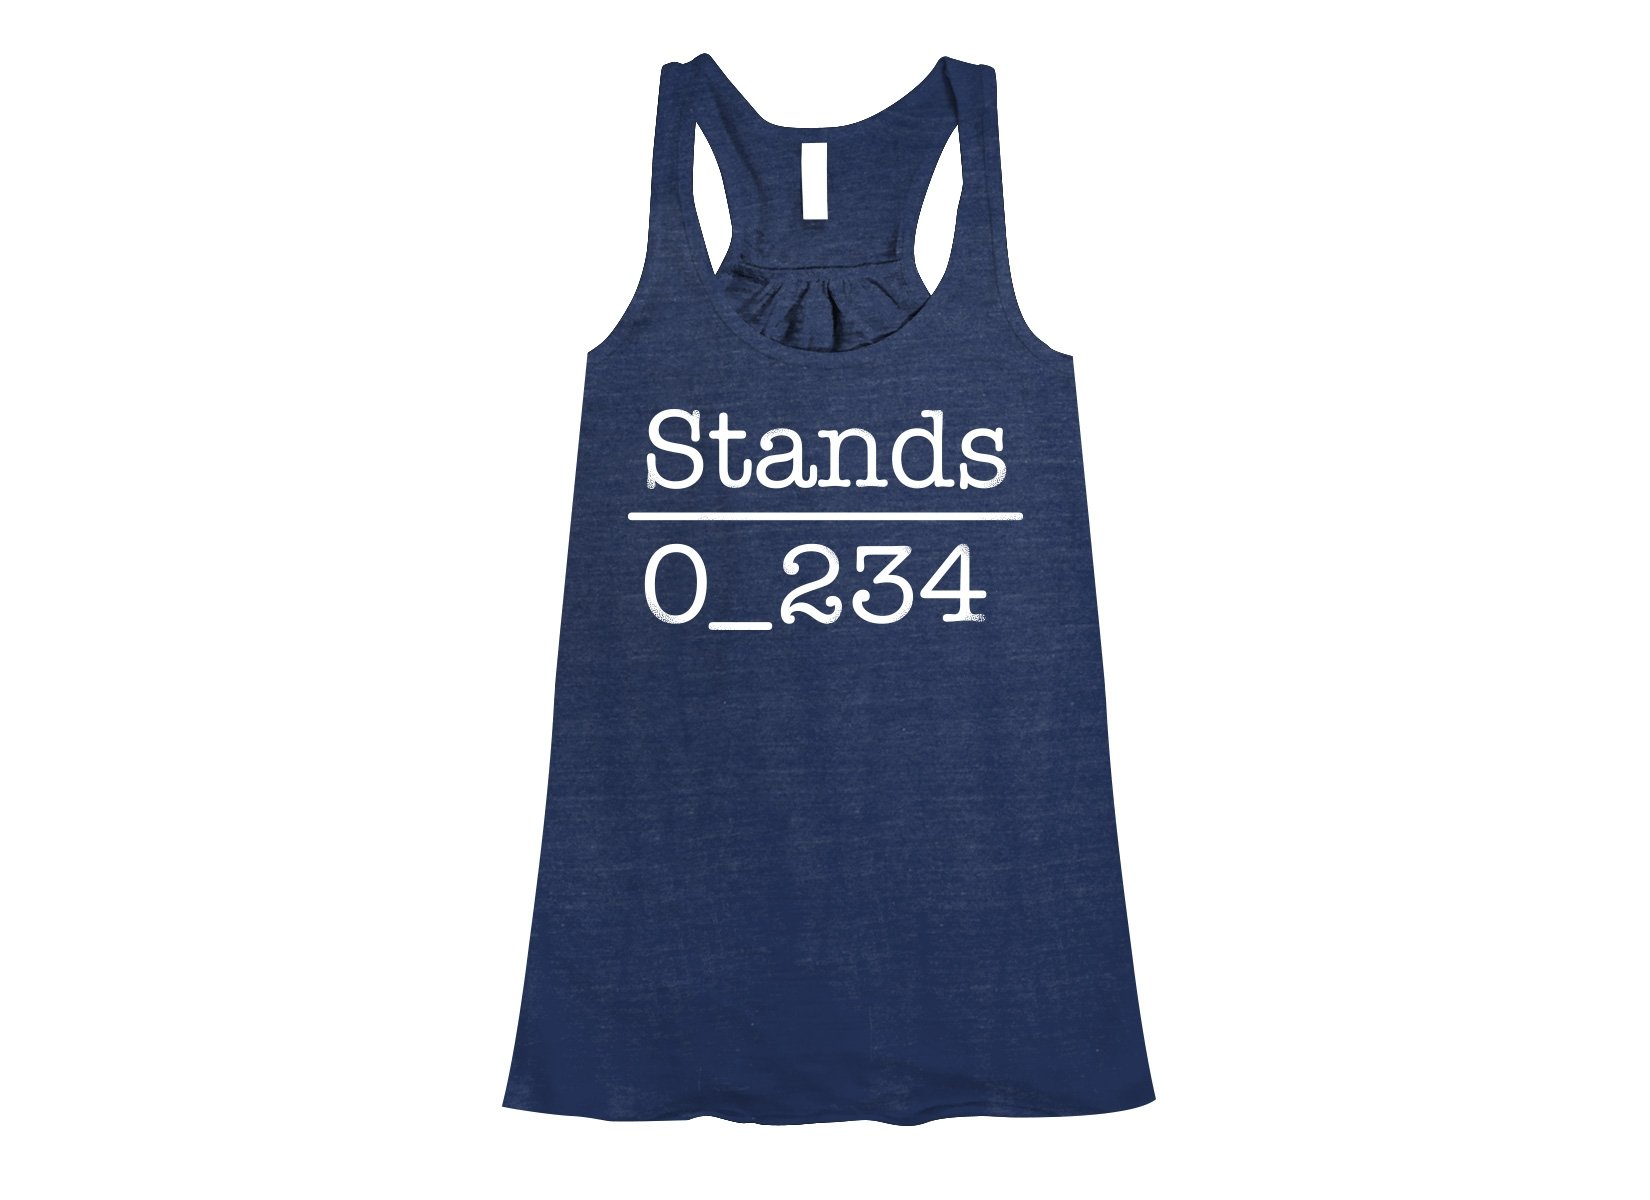 No 1 Under Stands on Womens Tanks T-Shirt